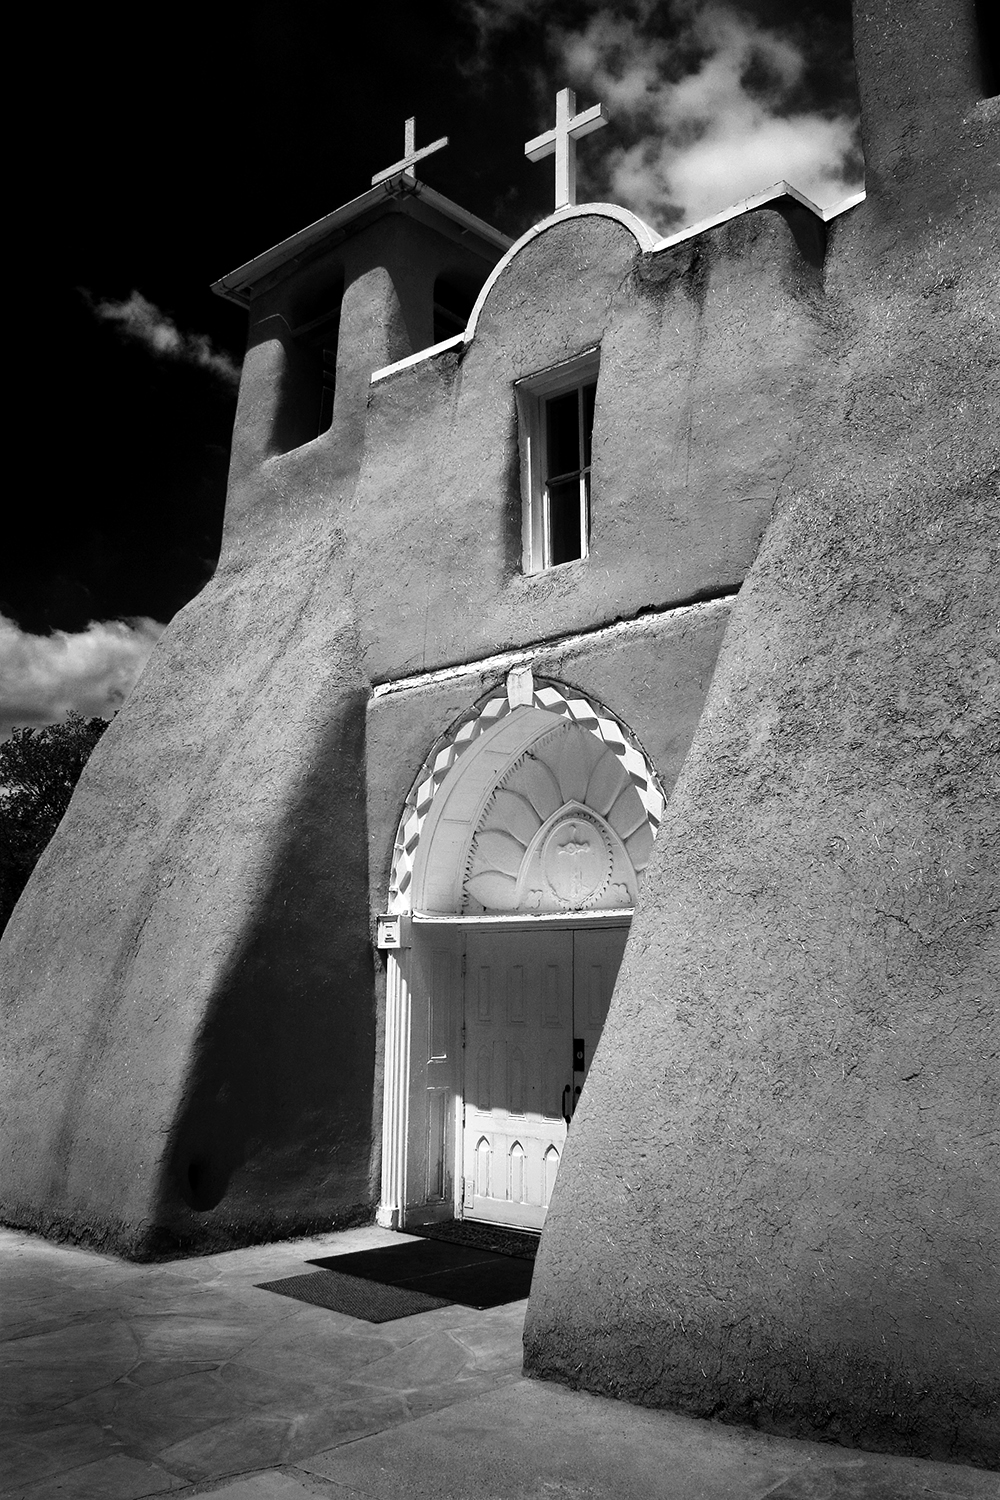 John captured this image of San Francisco de Asis Mission Church near Taos, New Mexico. The adobe church was built by the Franciscan Fathers and completed in 1815. Georgia O'Keefe described it as one of the most beautiful buildings left in the US by the early Spaniards.